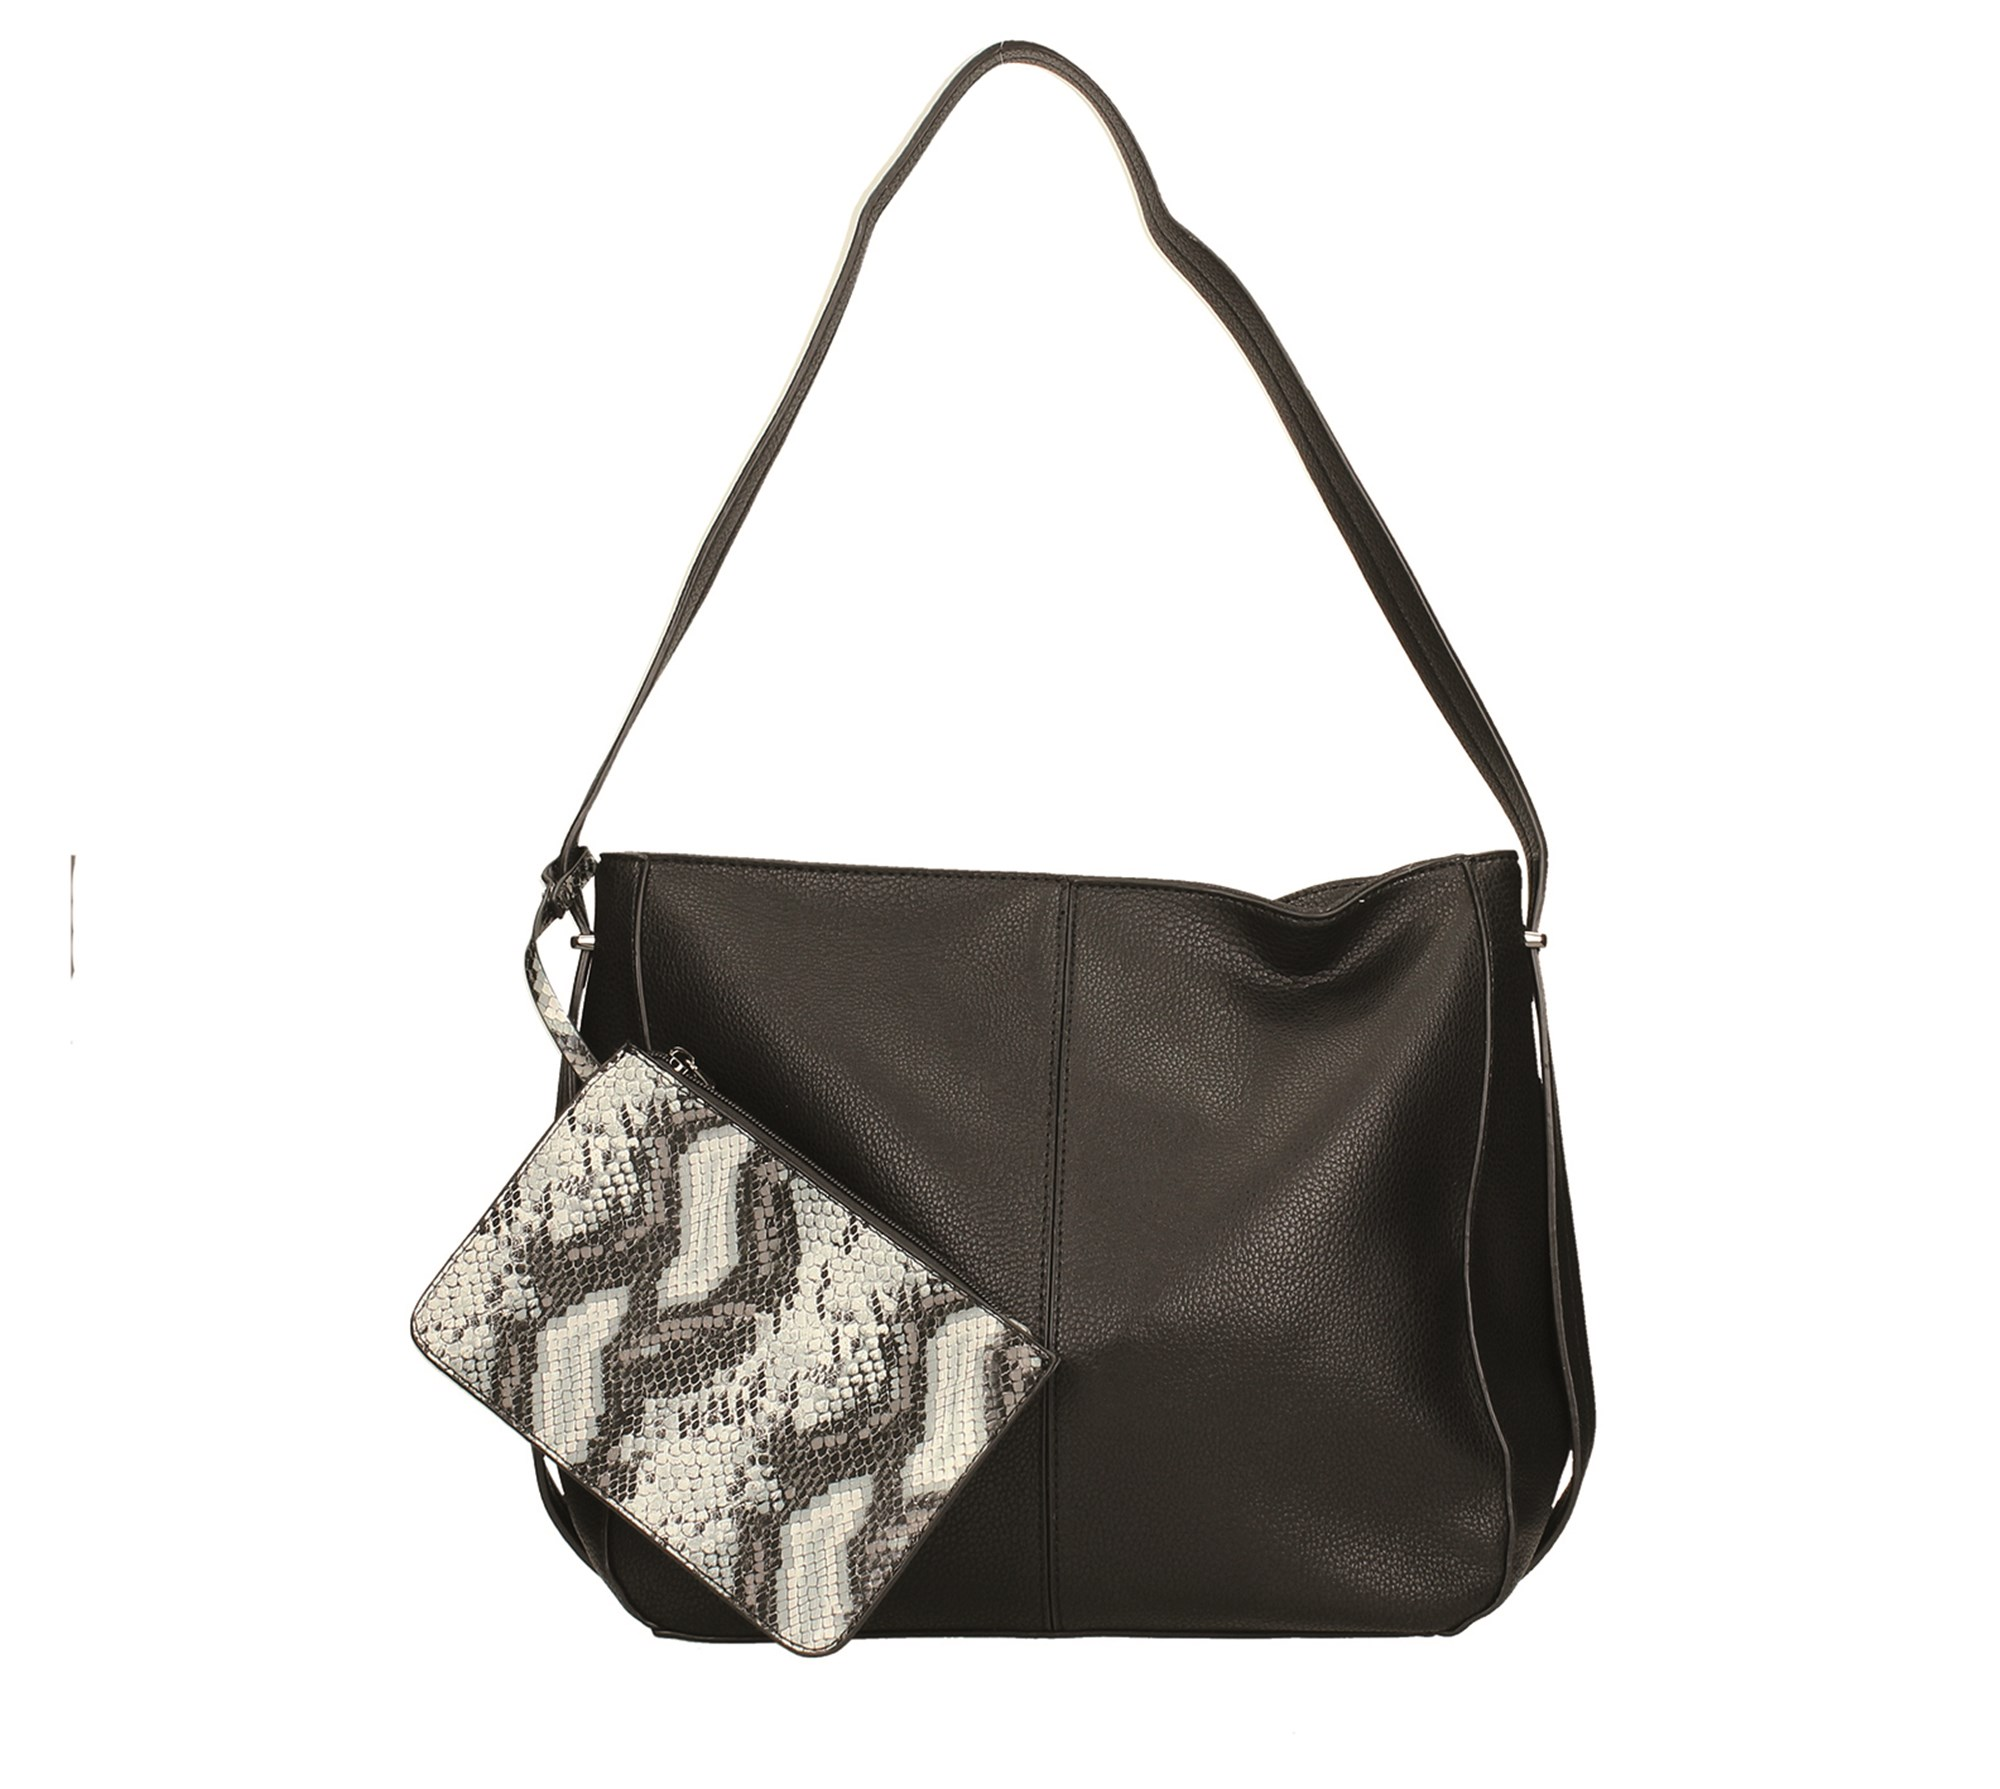 Tata Italia Accessories Woman Bags 19P094